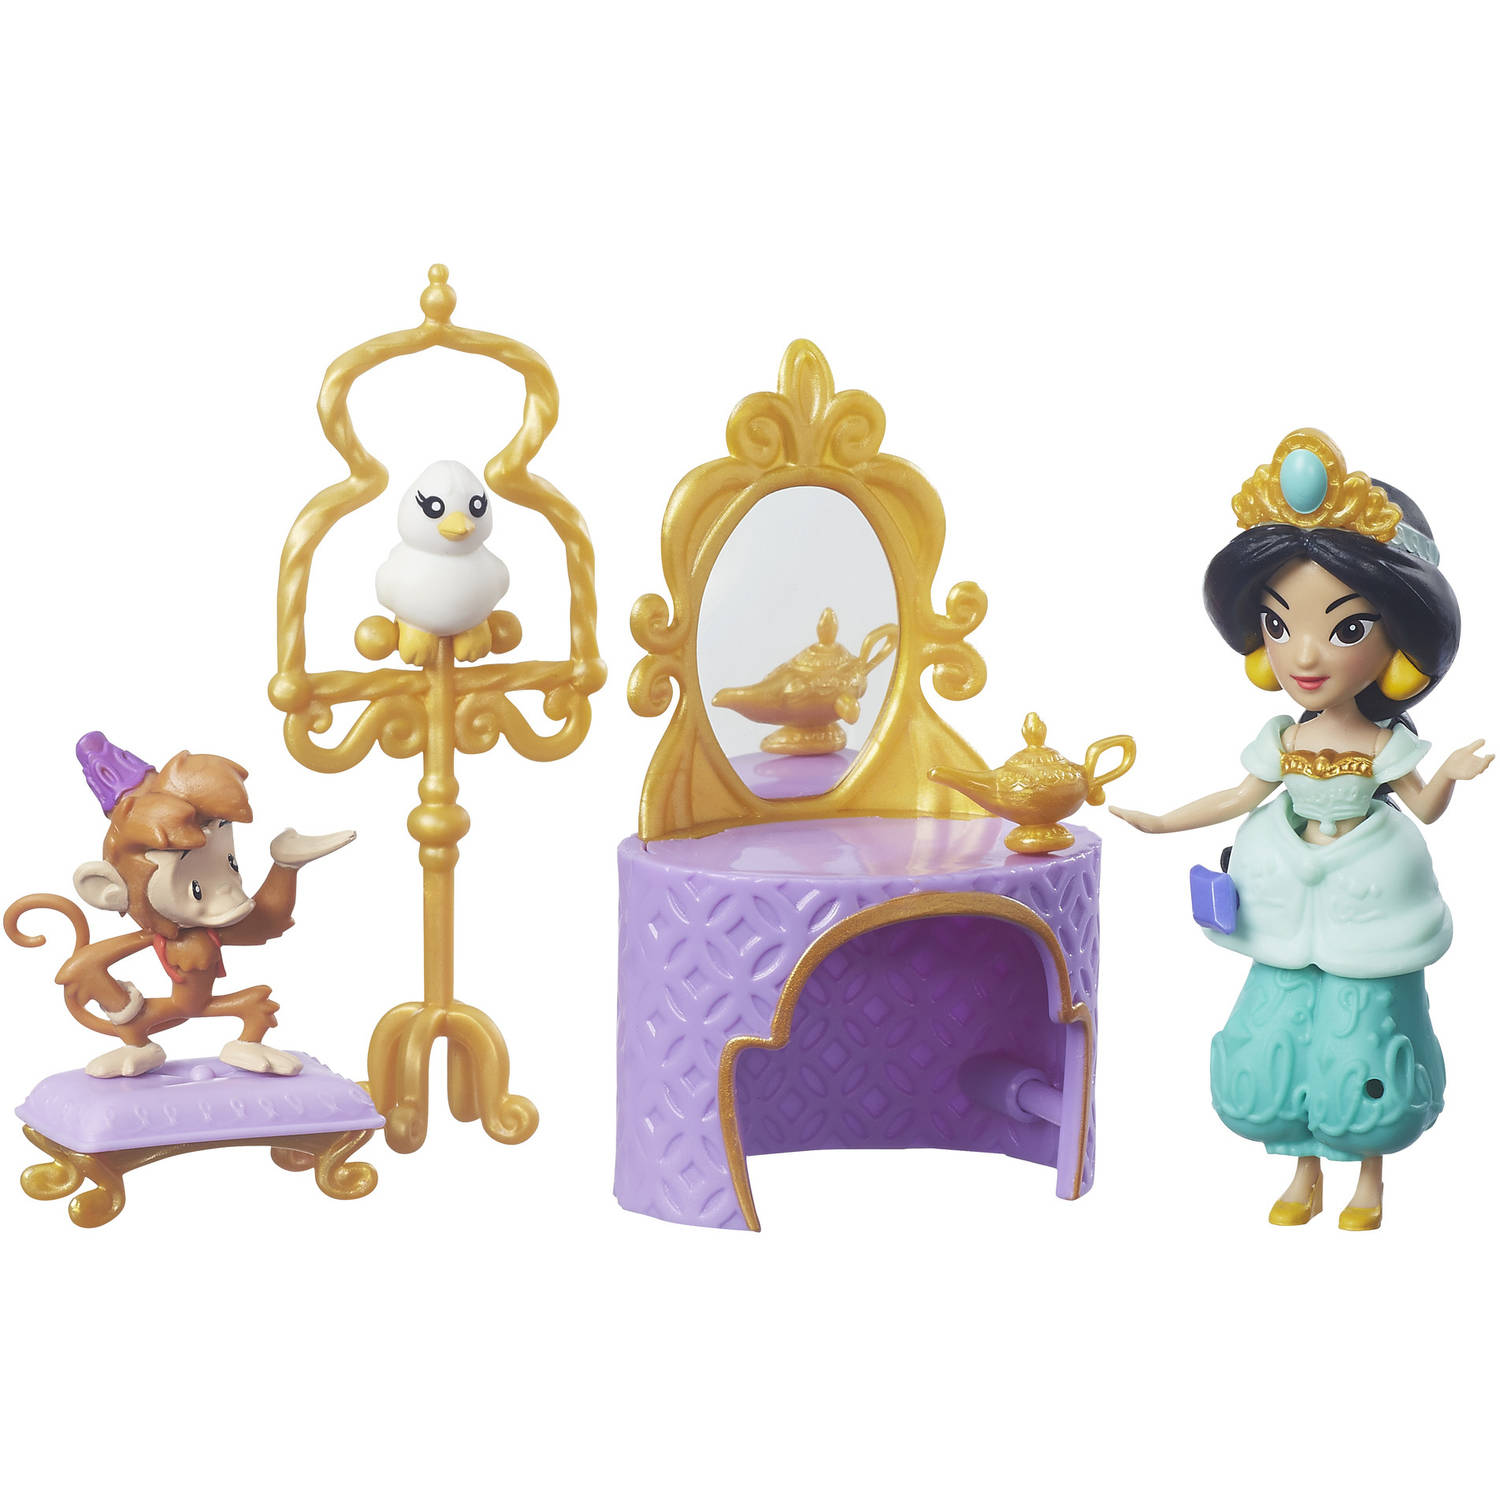 Disney Princess Little Kingdom Jasmine's Golden Vanity Set by Hasbro